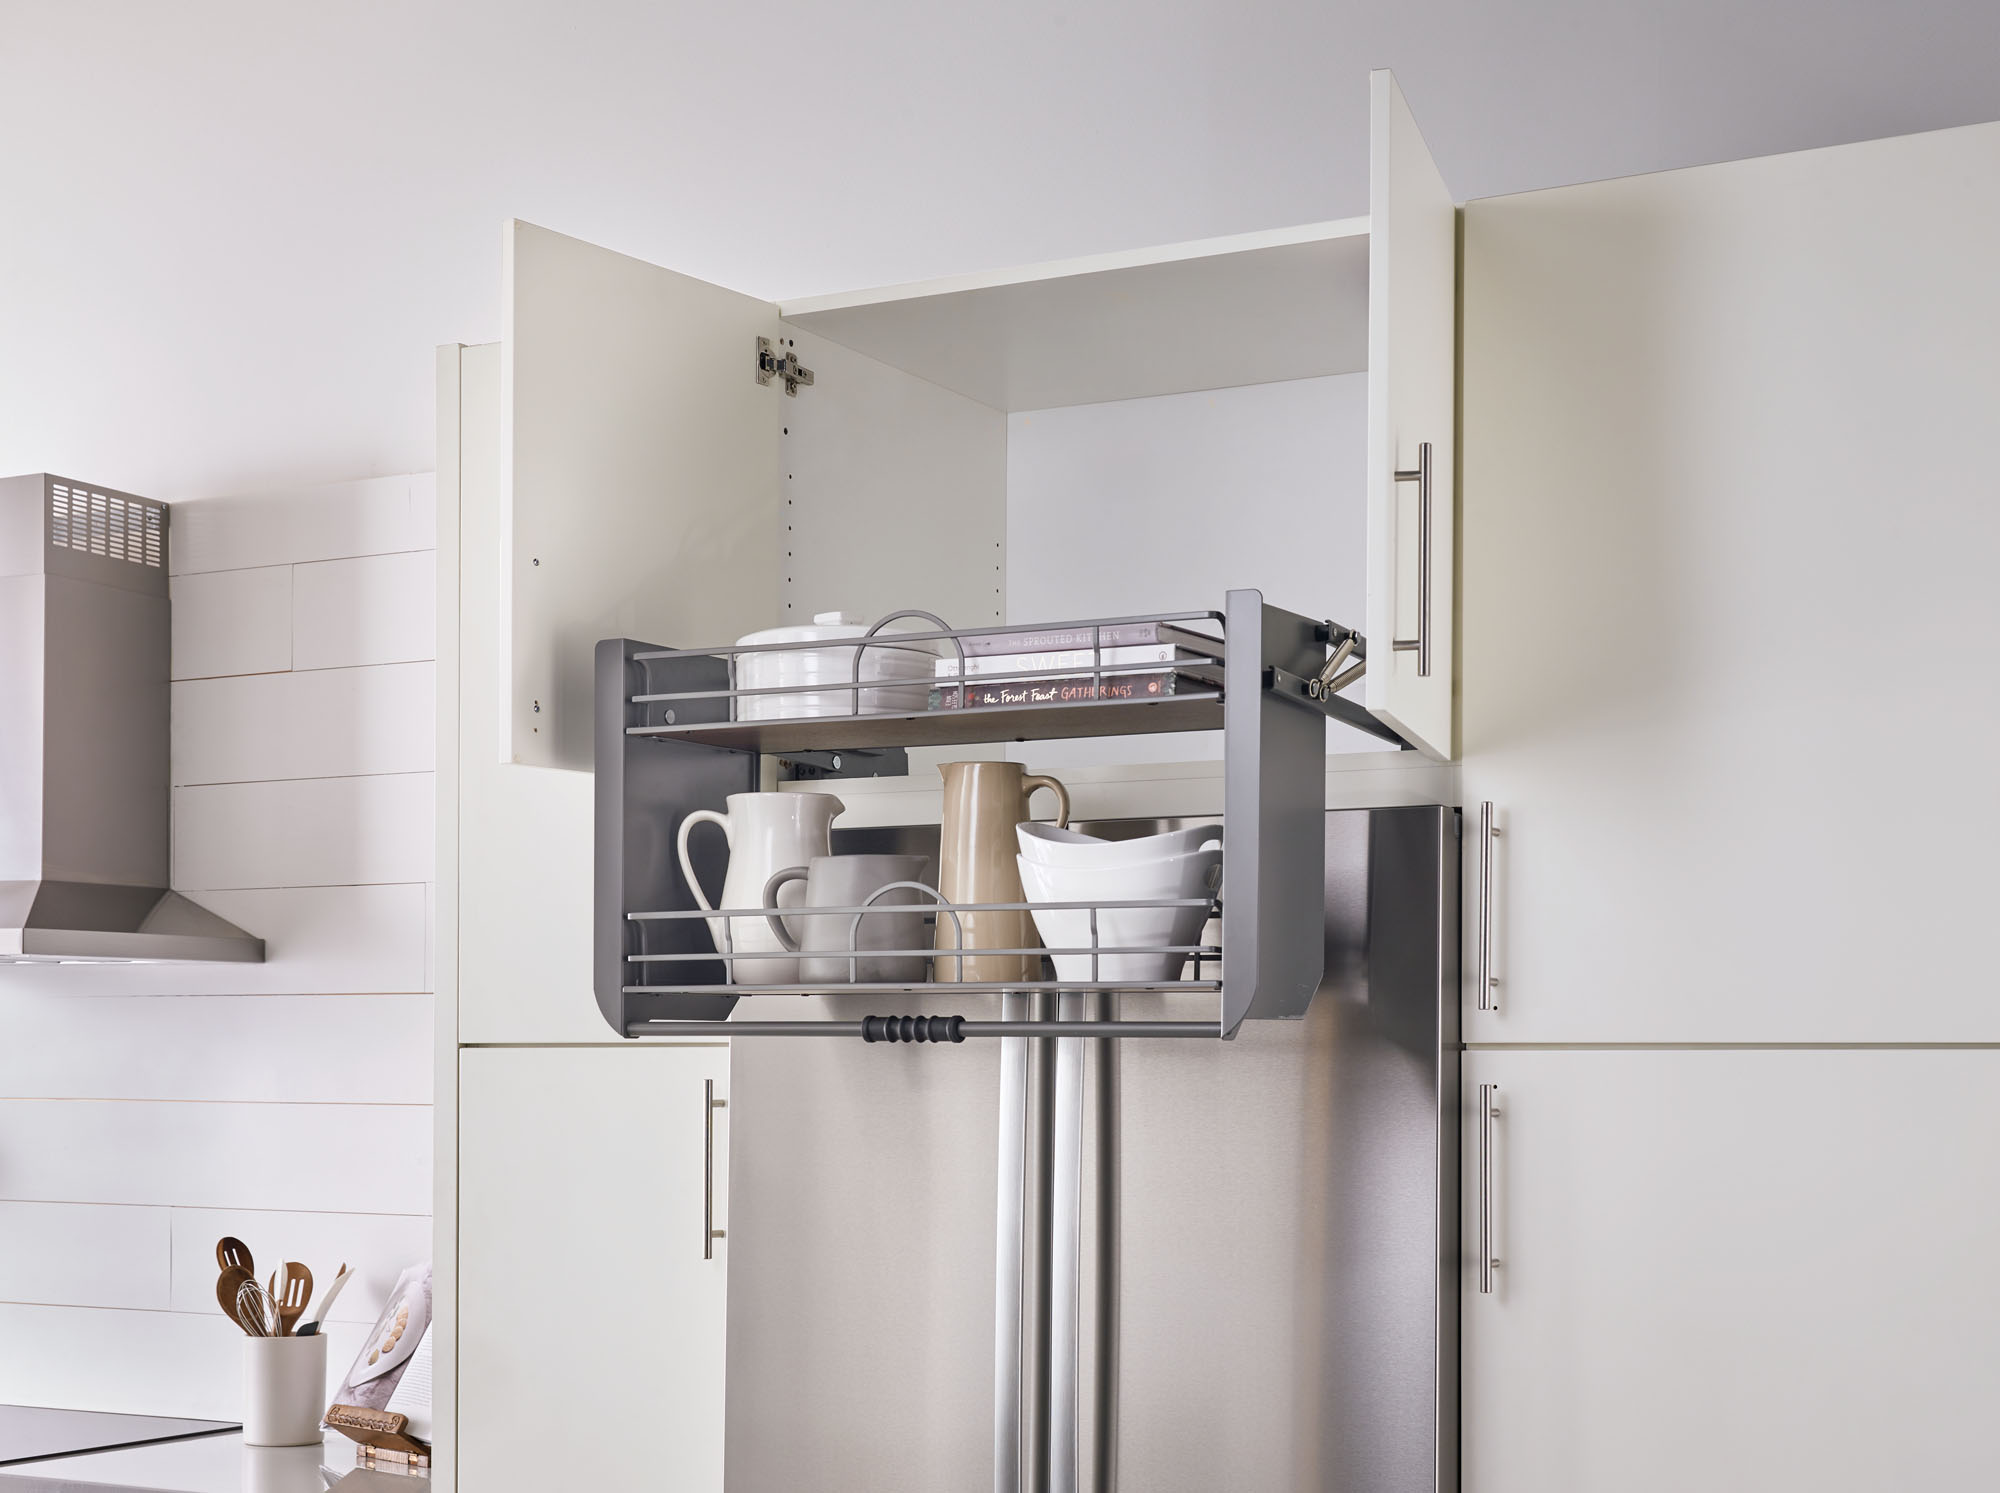 Pull Down Shelving System In Two Sizes Remodeling Industry News Qualified Remodeler